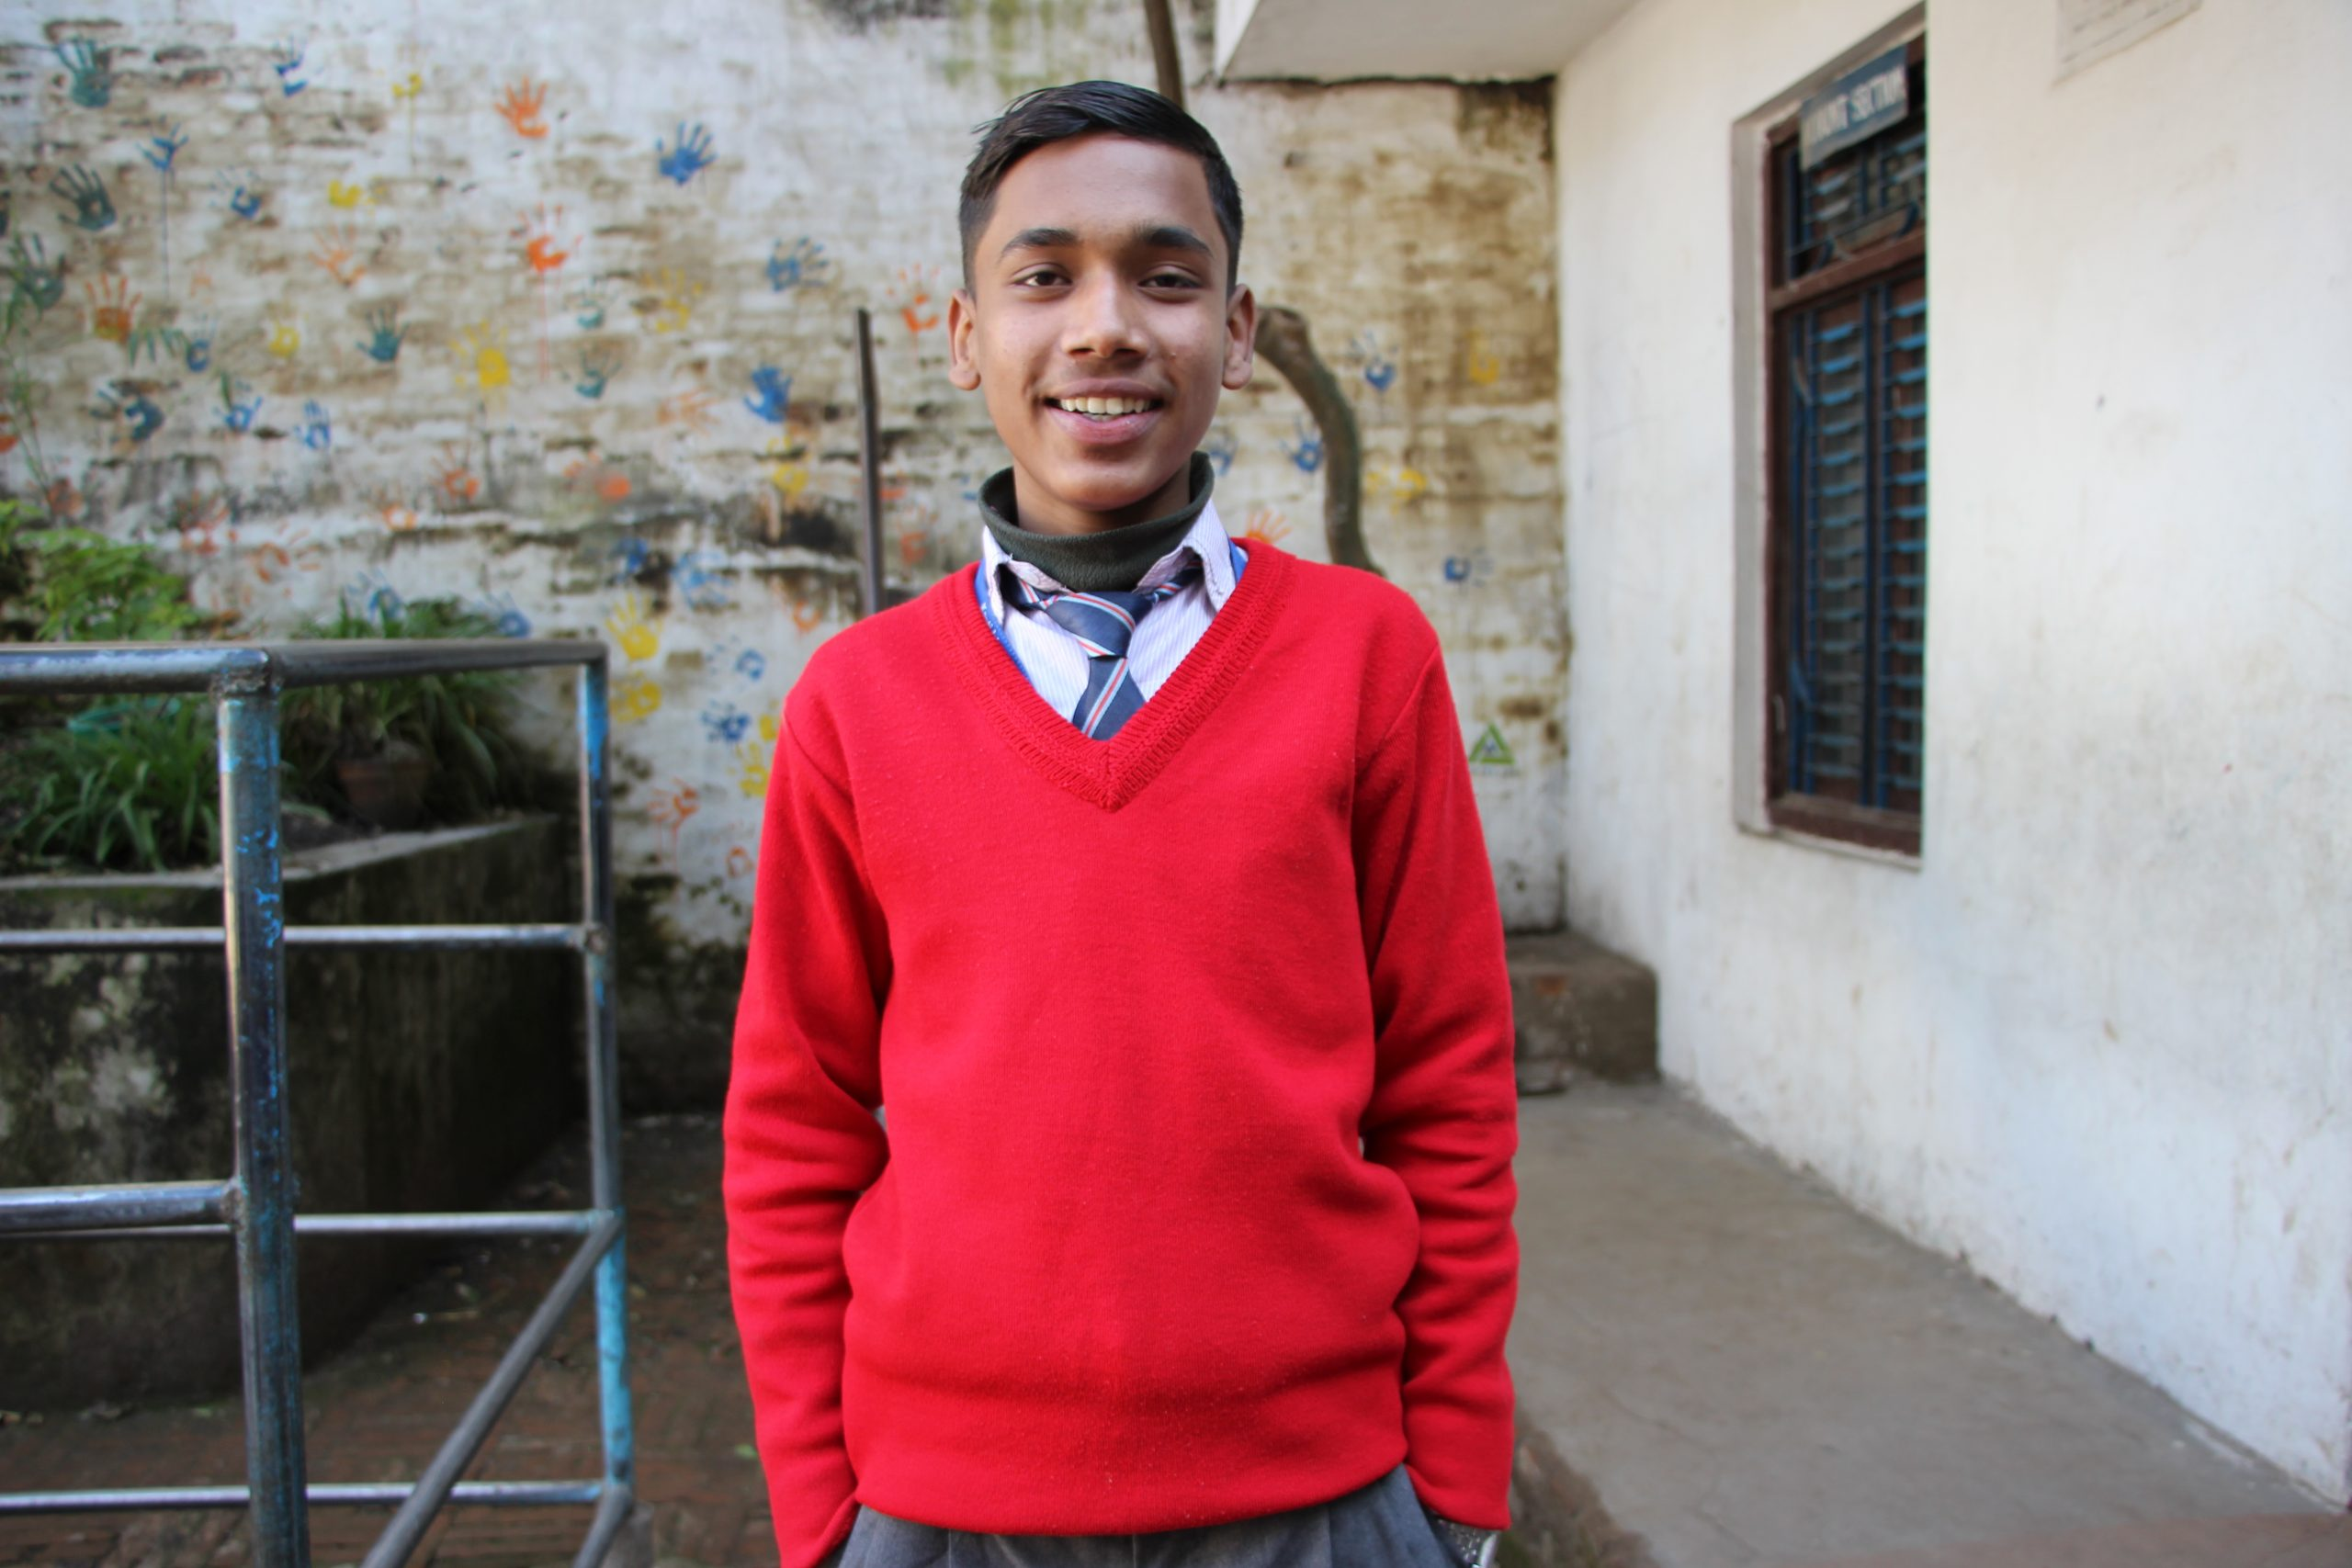 Dipershan Nepali, Canopy Nepal Excellence Scholar-CANSHIP